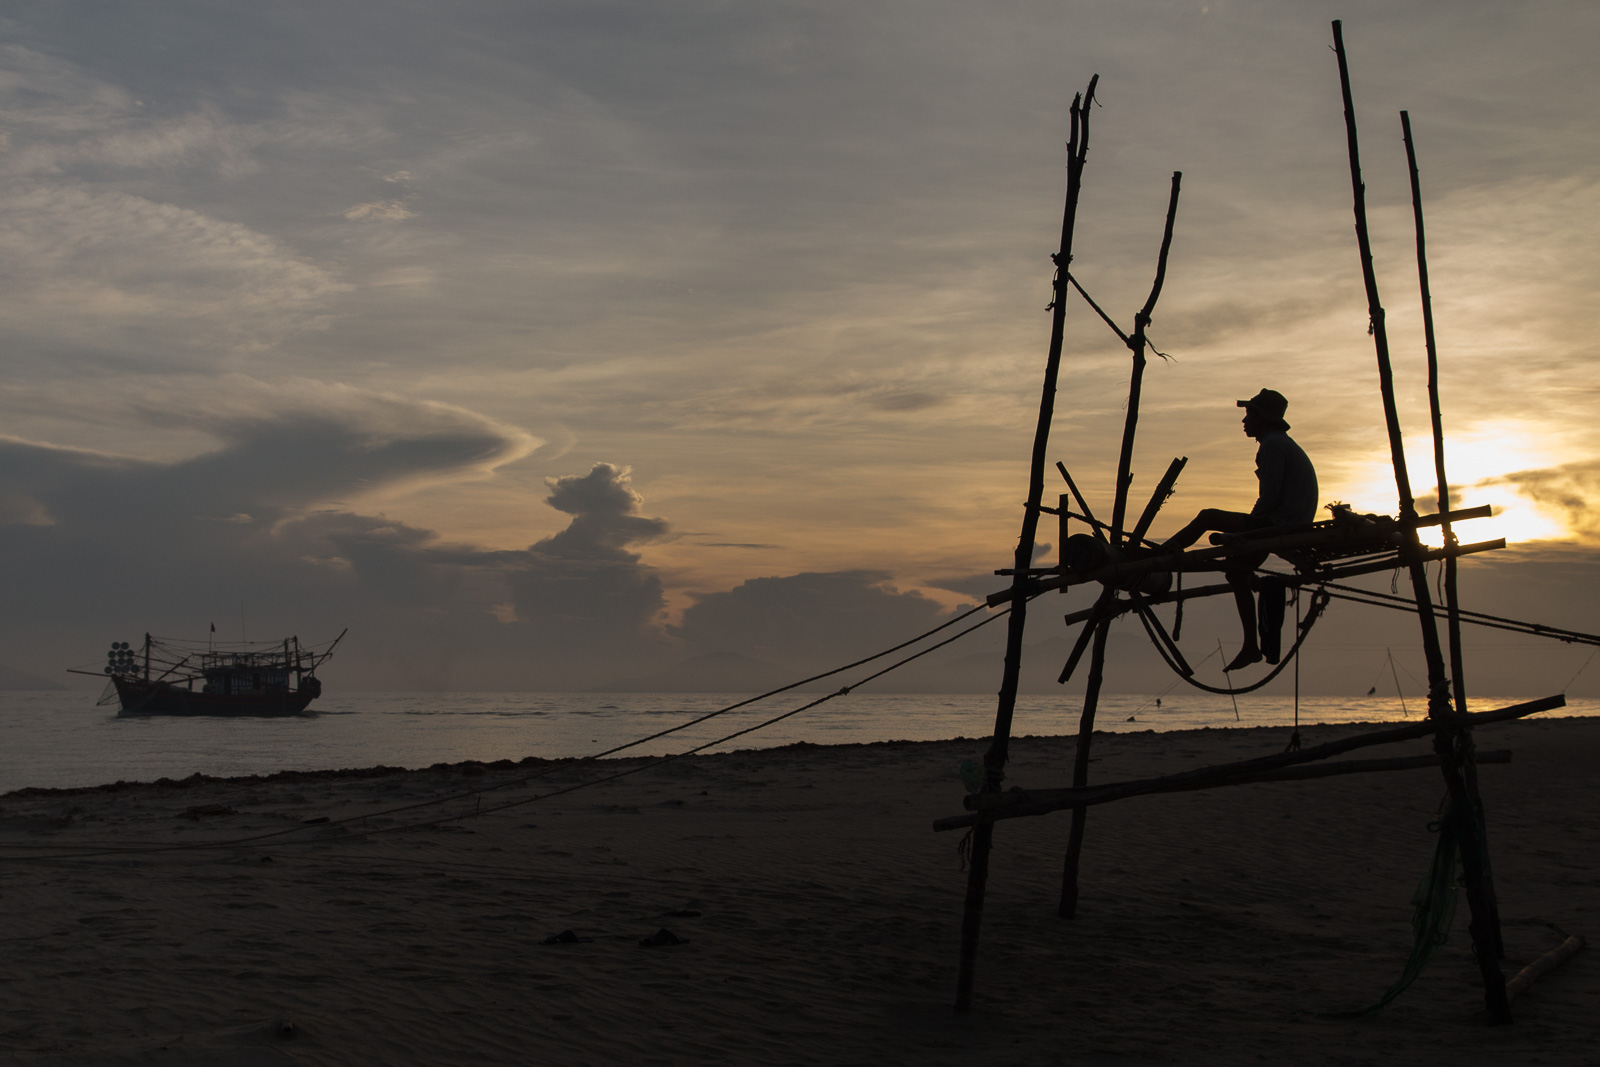 A fisherman waits patiently and watches the water for signs of movement. Once he senses that the fish have moved through he winds the winch up to check on his net.